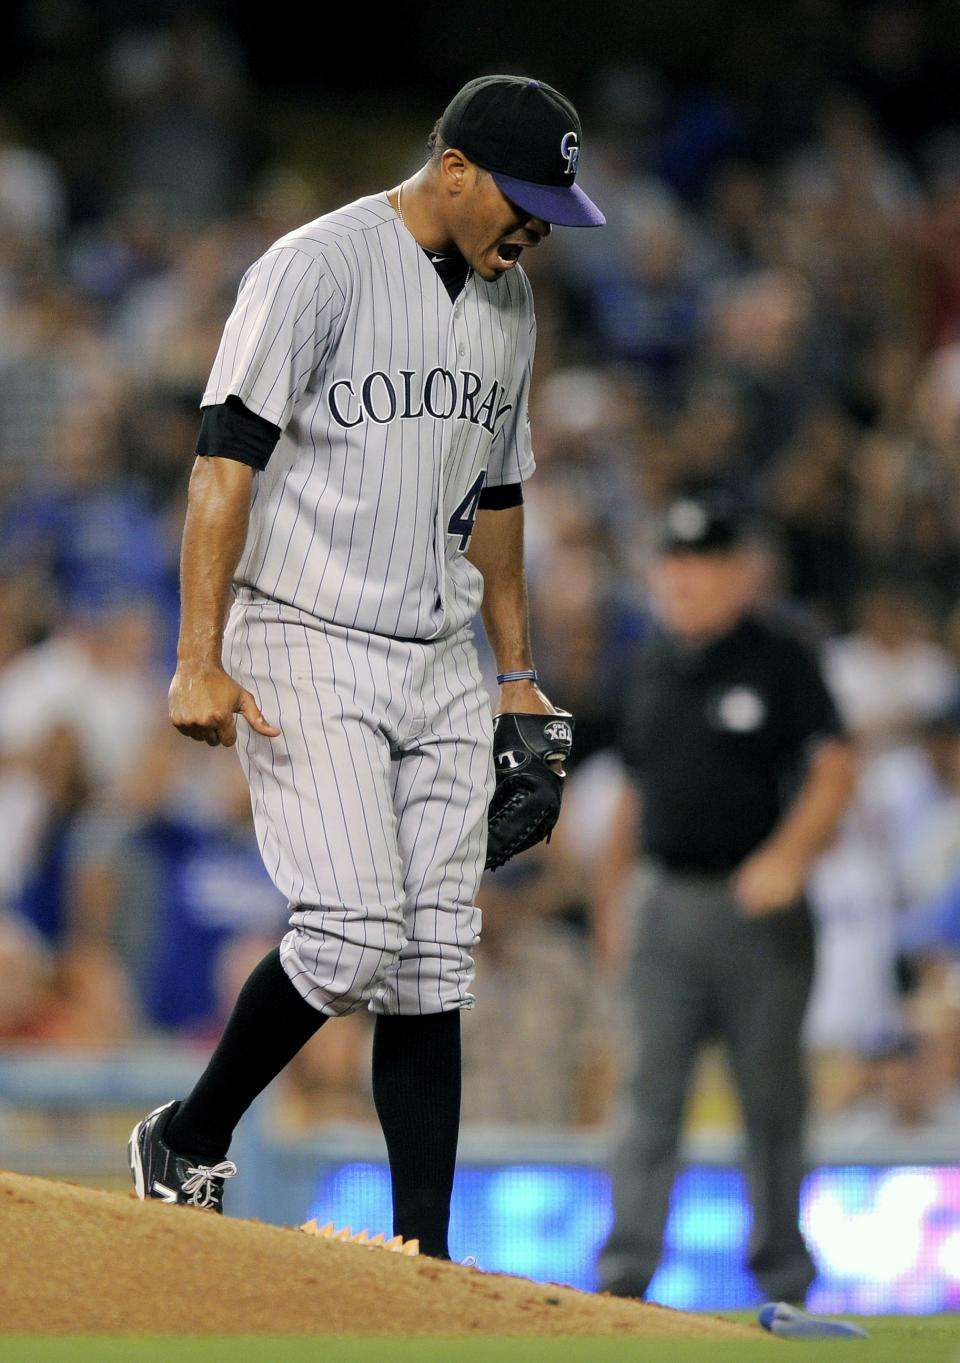 Colorado Rockies starting pitcher Esmil Rogers reacts after being called for a balk with the bases loaded during the seventh inning of their baseball game against the Los Angeles Dodgers, Friday, Aug. 26, 2011, in Los Angeles. (AP Photo/Mark J. Terrill)